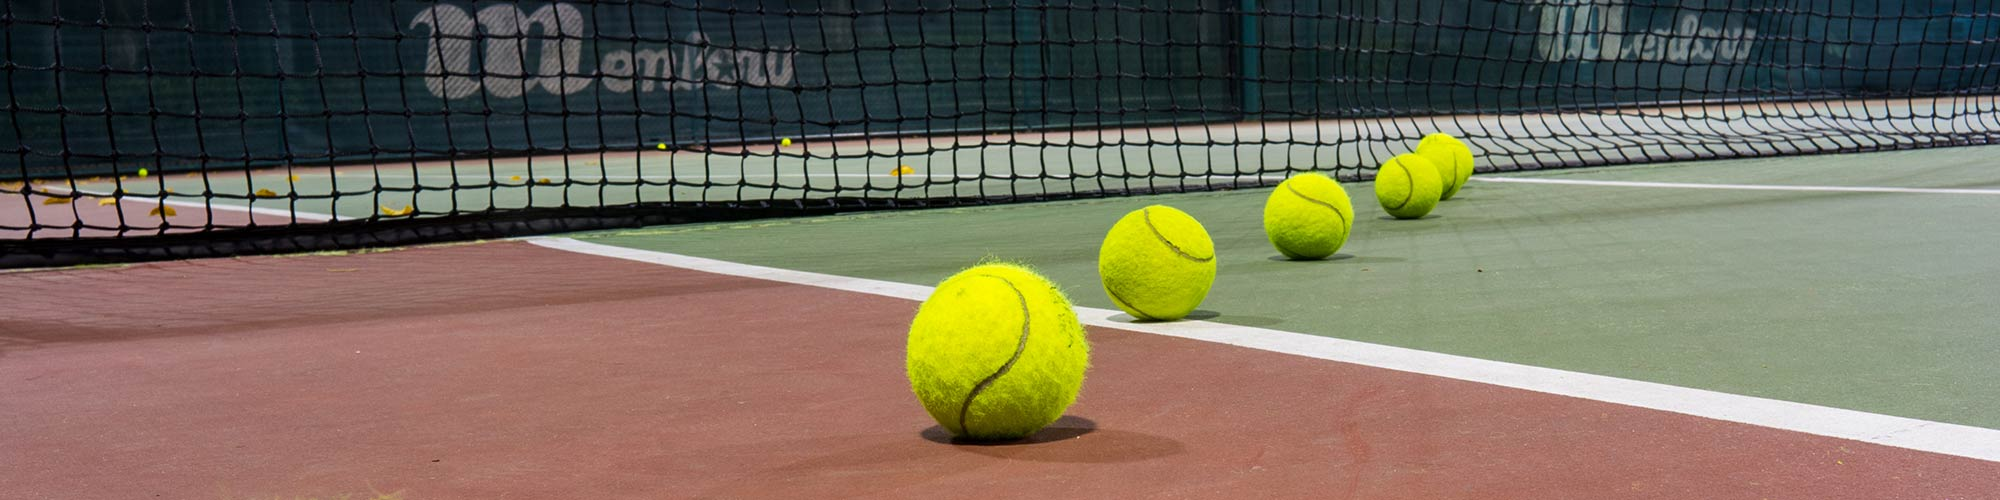 Maths point—the mathematics of tennis - Curious